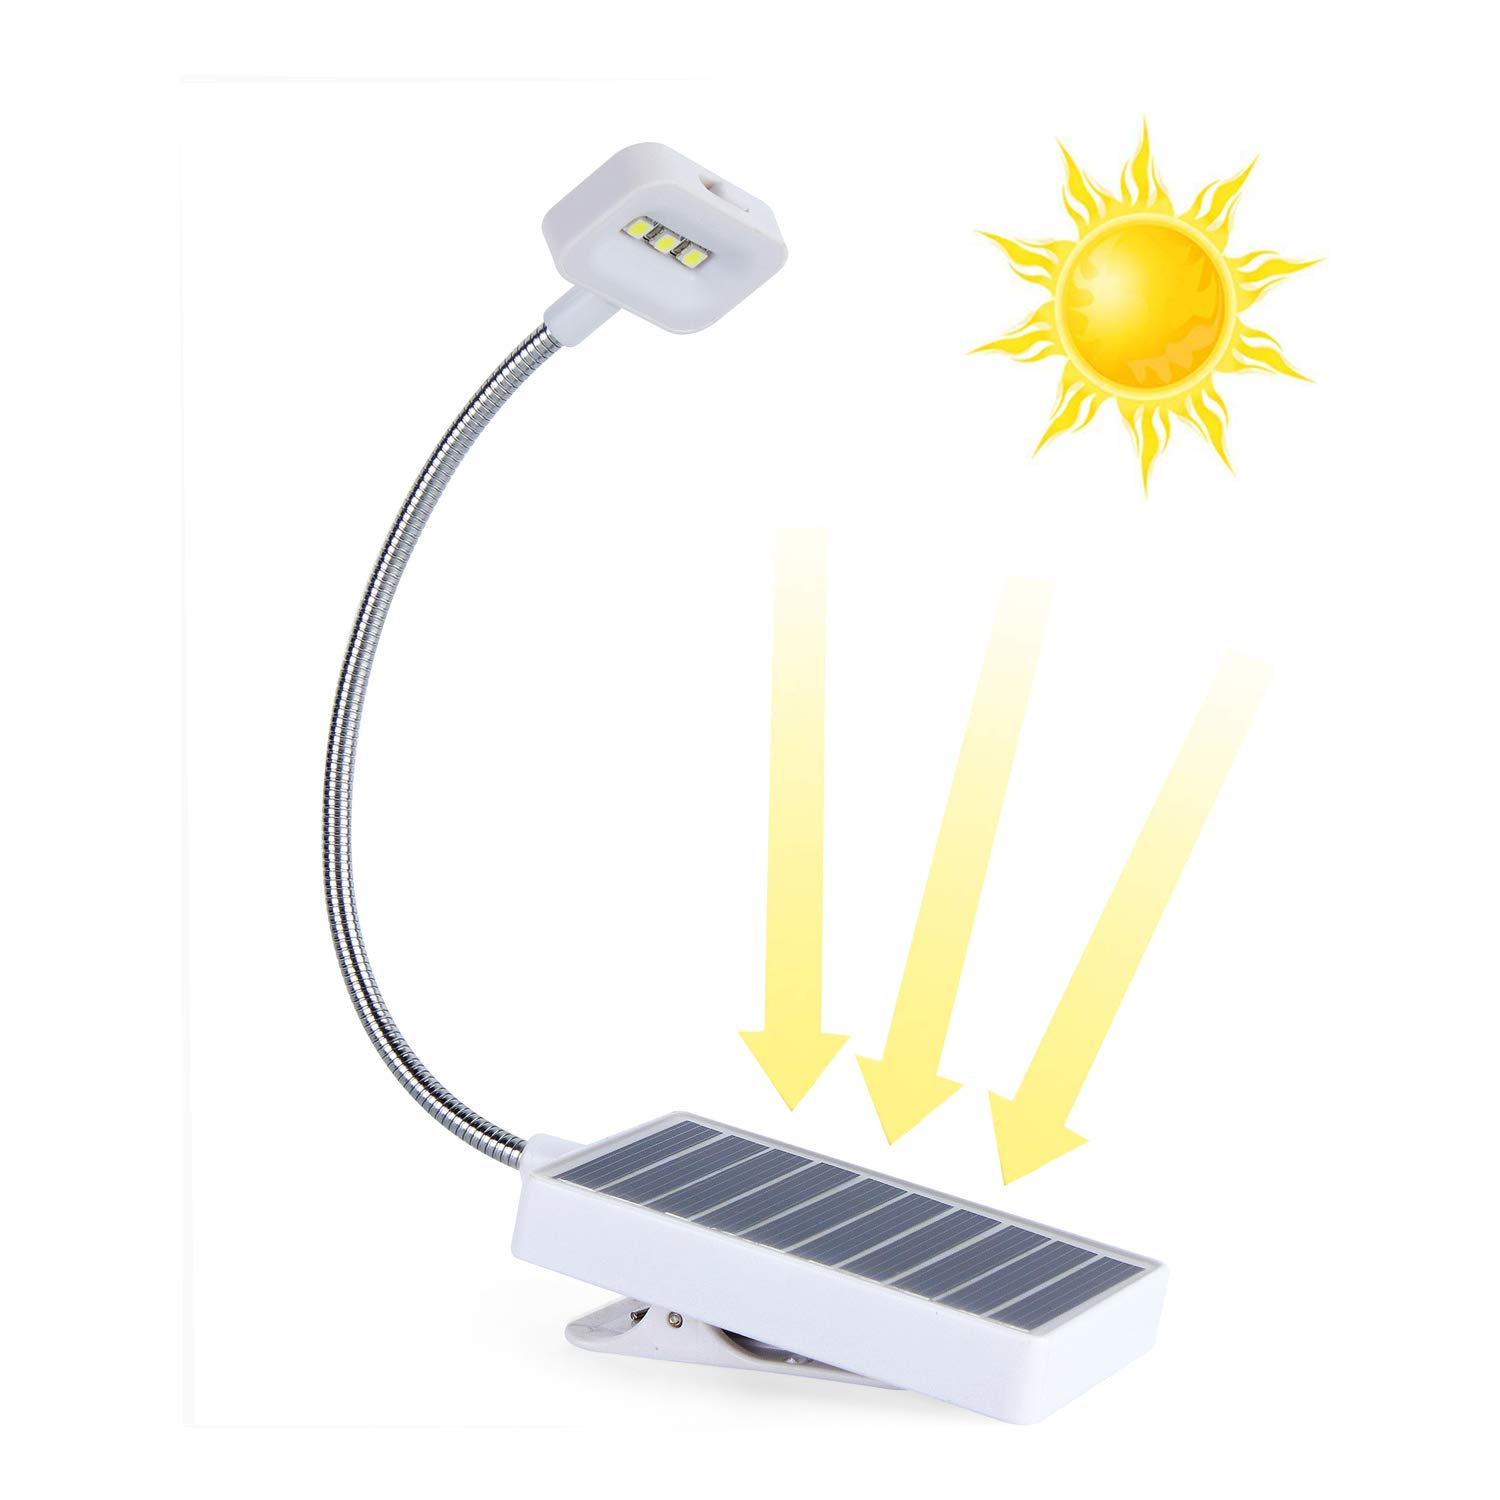 Solar LED Book Light,Solar Eco and USB Recharging,Glowseen Soft Clip Reading Lamp, Adjustable 2-Level Brightness, Best for Reading in Bed